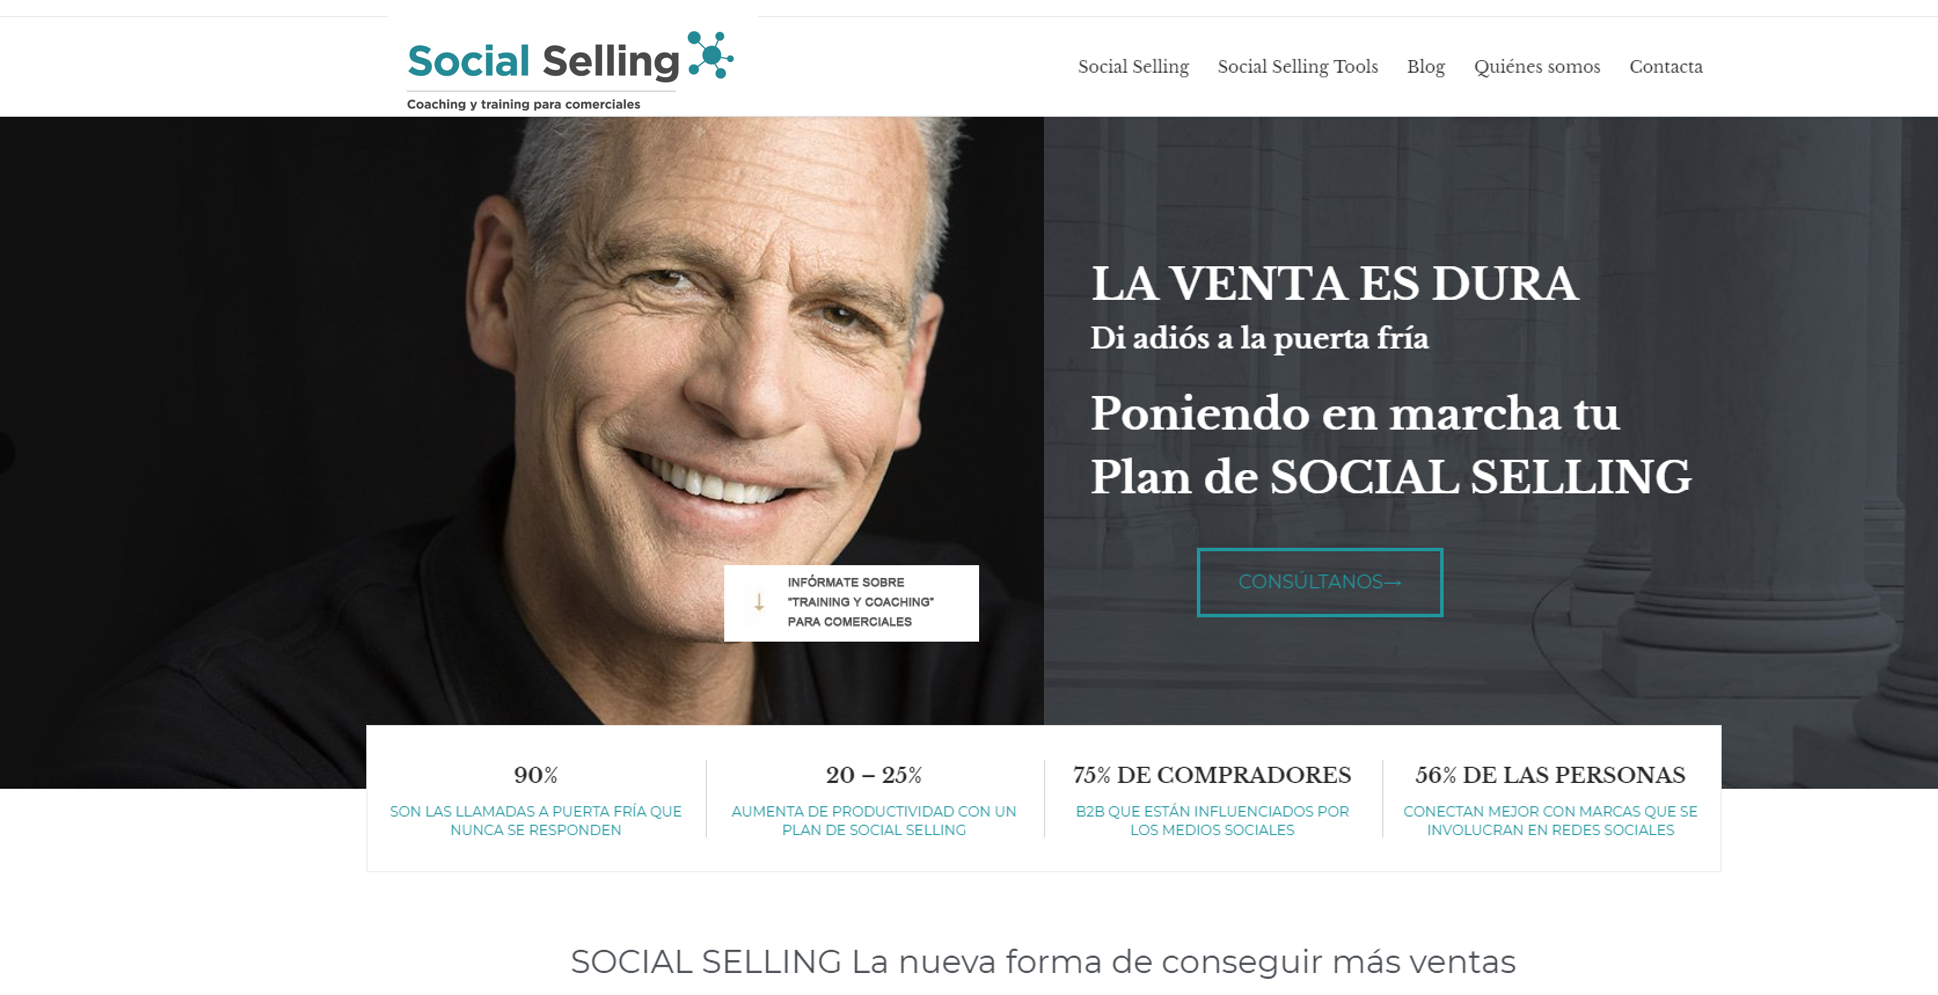 social-selling-coaching-training-comerciales